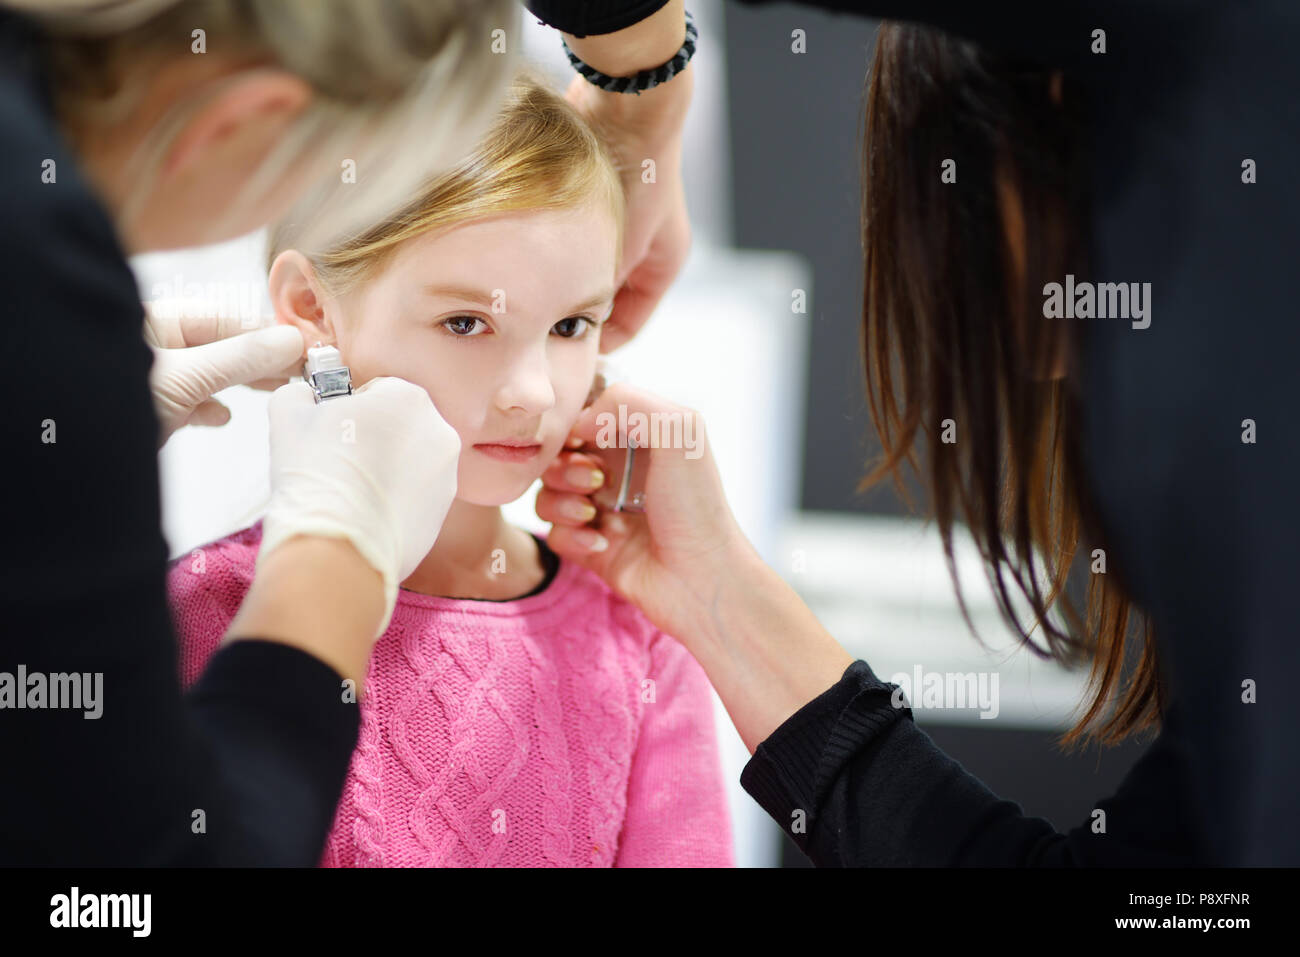 Adorable Little Girl Having Ear Piercing Process With Special